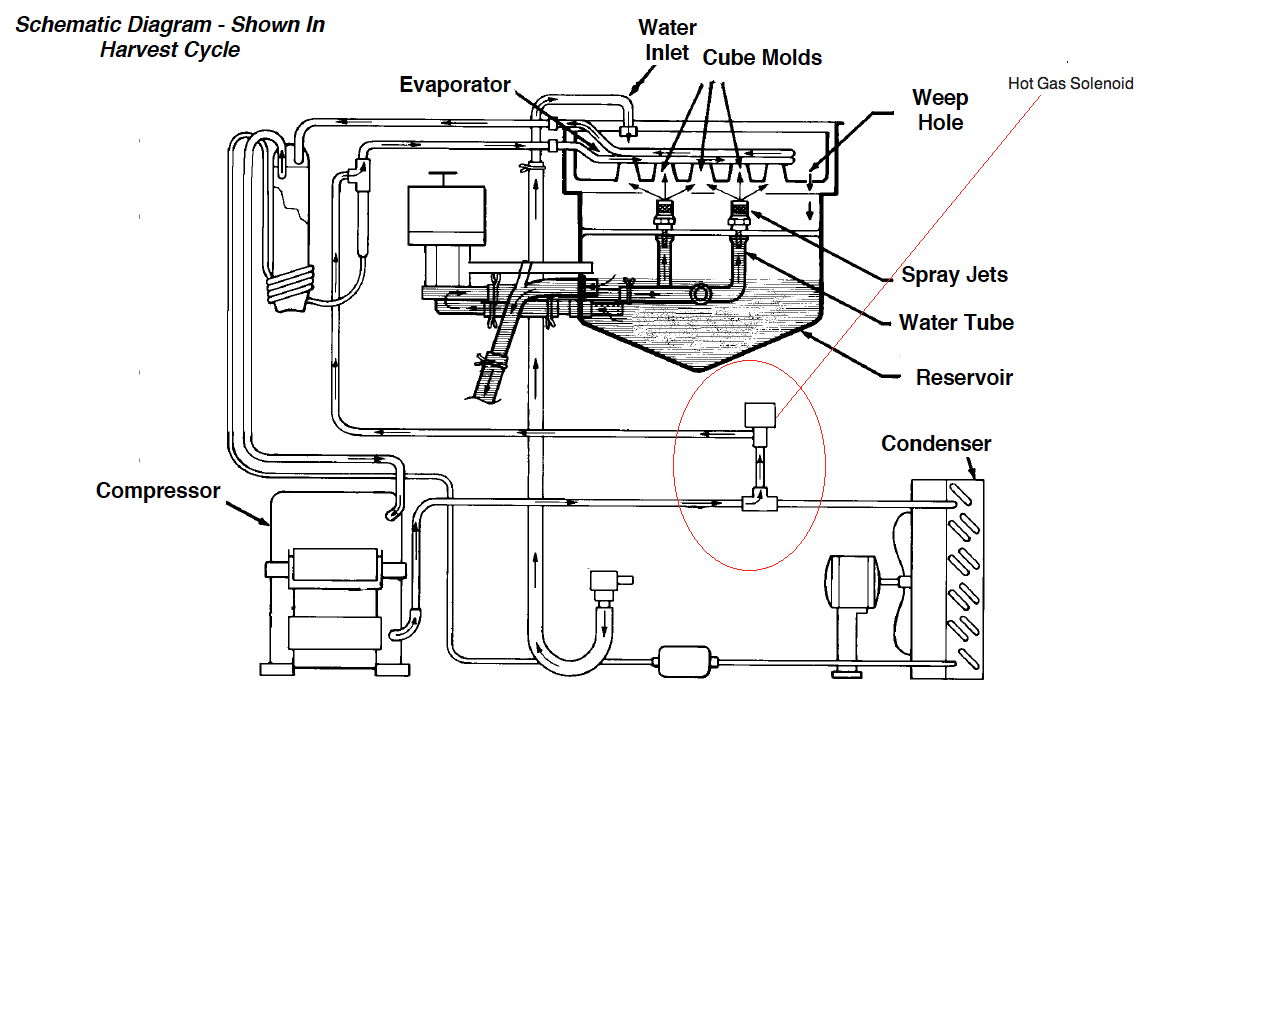 hoshizaki wiring diagrams scotsman ice machine electrical diagram - somurich.com